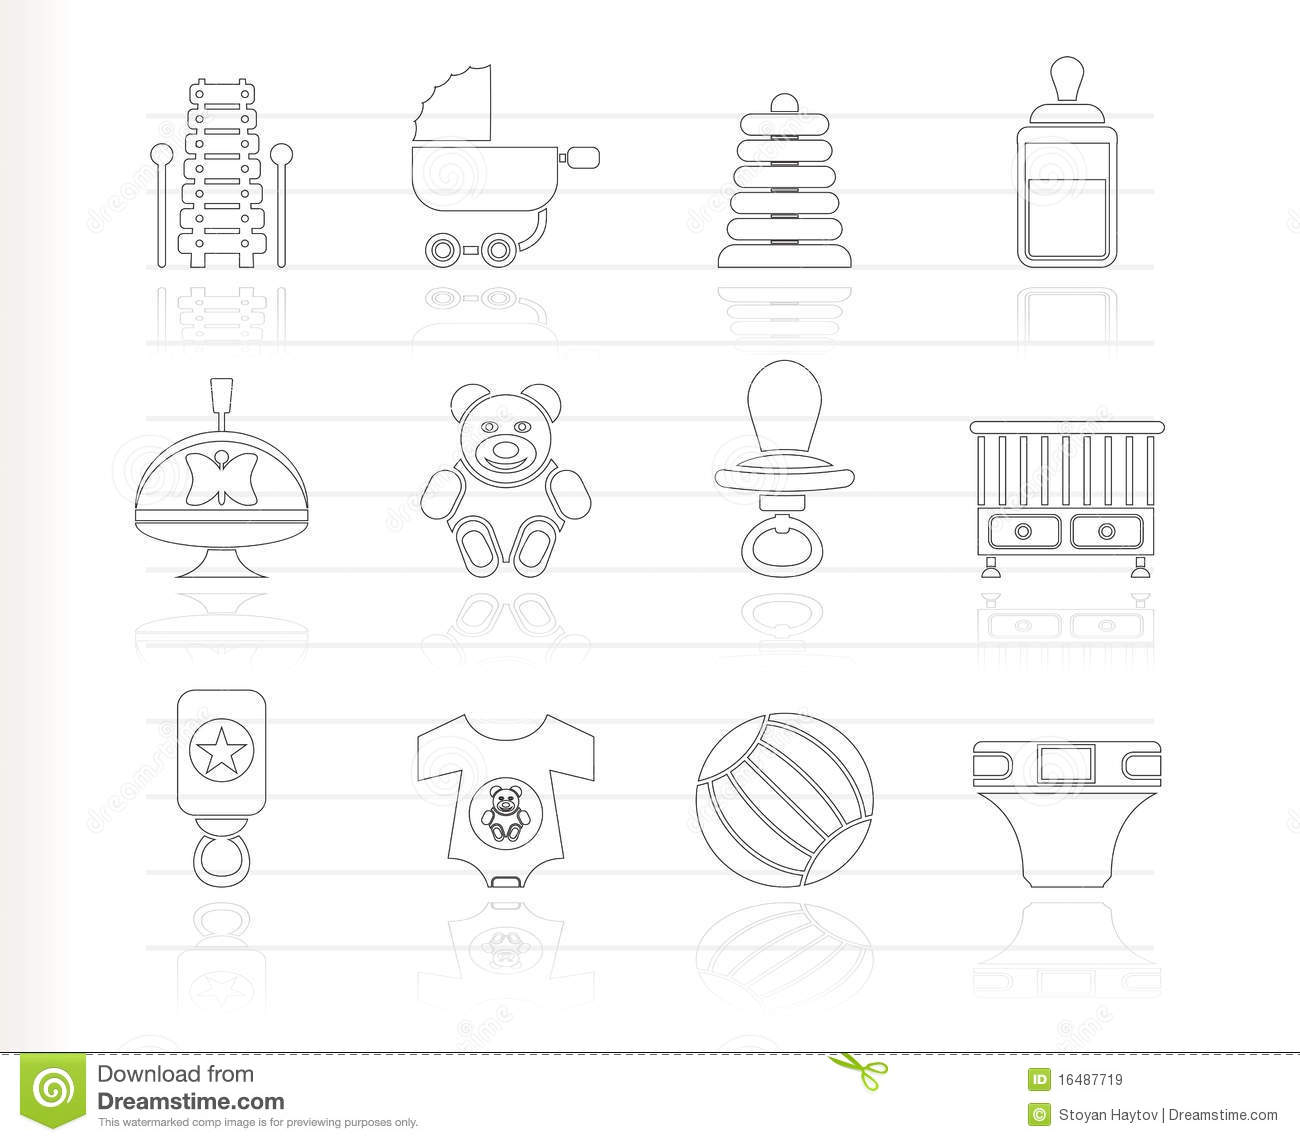 child baby and baby online shop icons royalty free stock images image 16487719. Black Bedroom Furniture Sets. Home Design Ideas